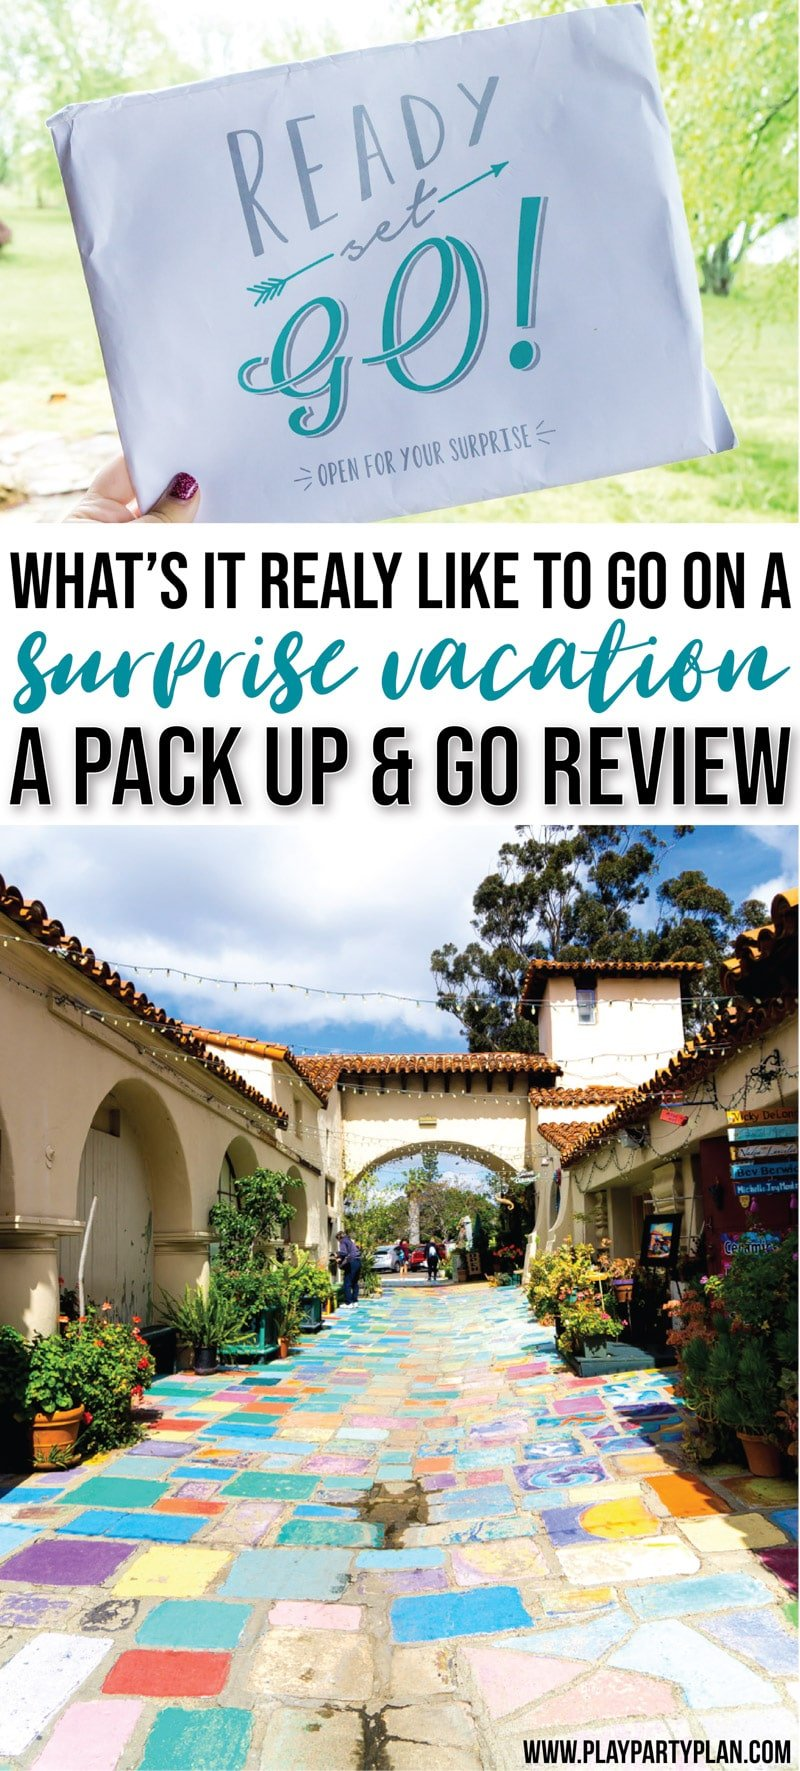 Looking for fun surprise vacation ideas for husband, boyfriend, or even a trip with your kids? Find out how the Pack Up and Go travel agency can plan an entire surprise vacation for you! They'll set you up with great destinations, ideas to do there, and book things for you! All you have to do is open the envelope to reveal where you're going! Check out these posts for an unbiased review of the experience! via @playpartyplan